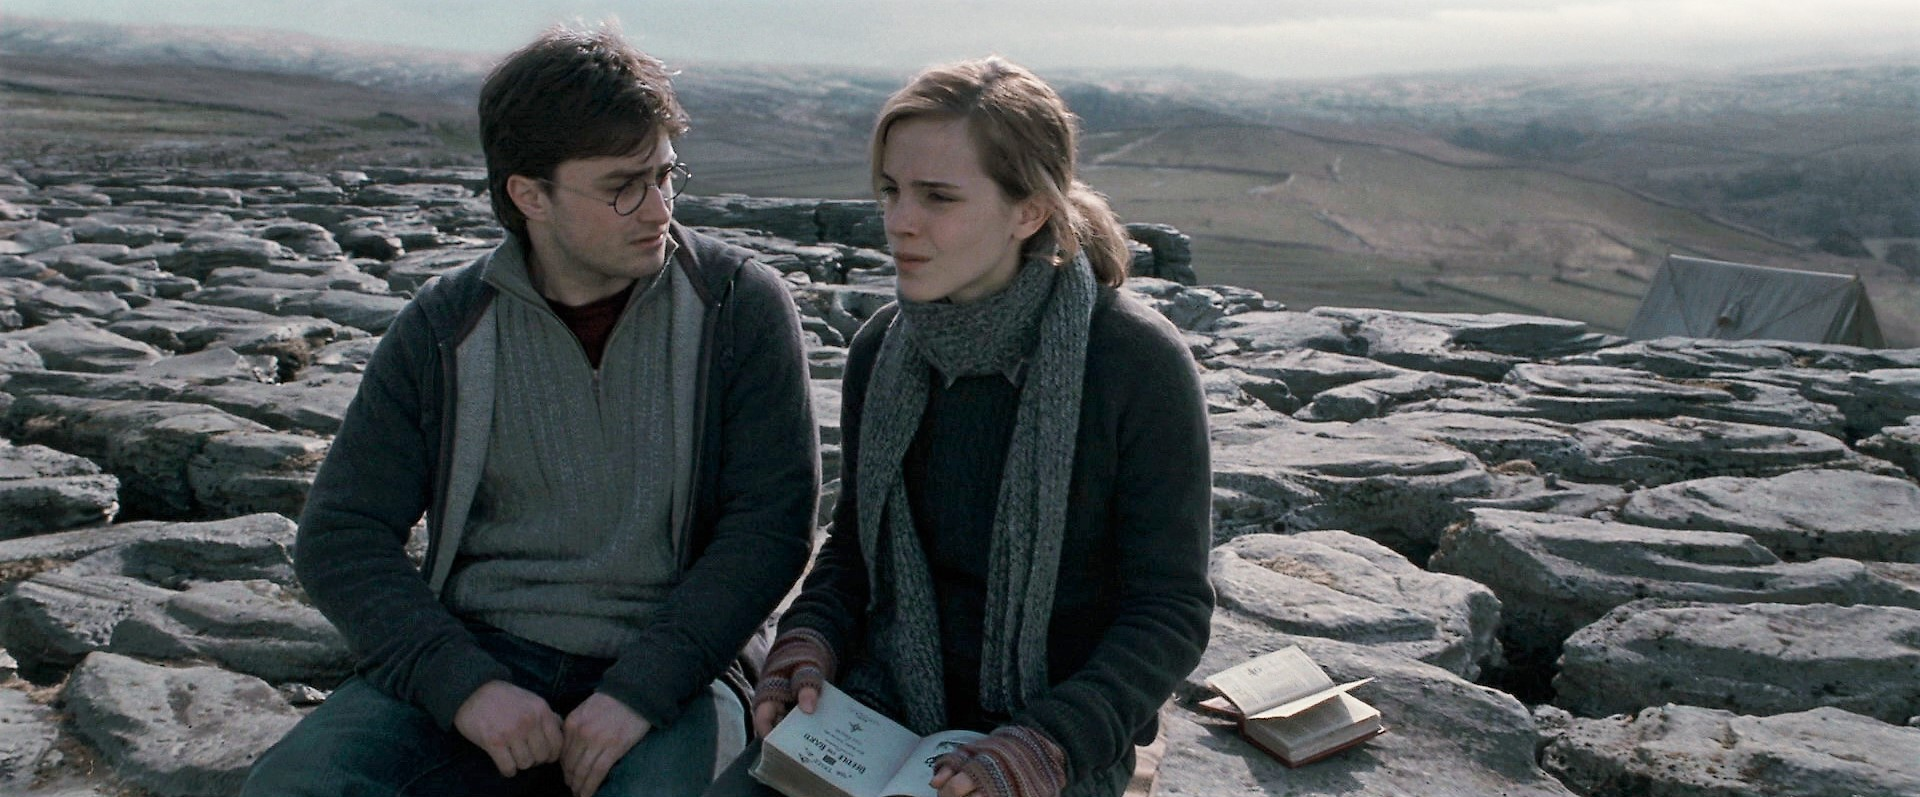 why didnt harry and hermione hook up